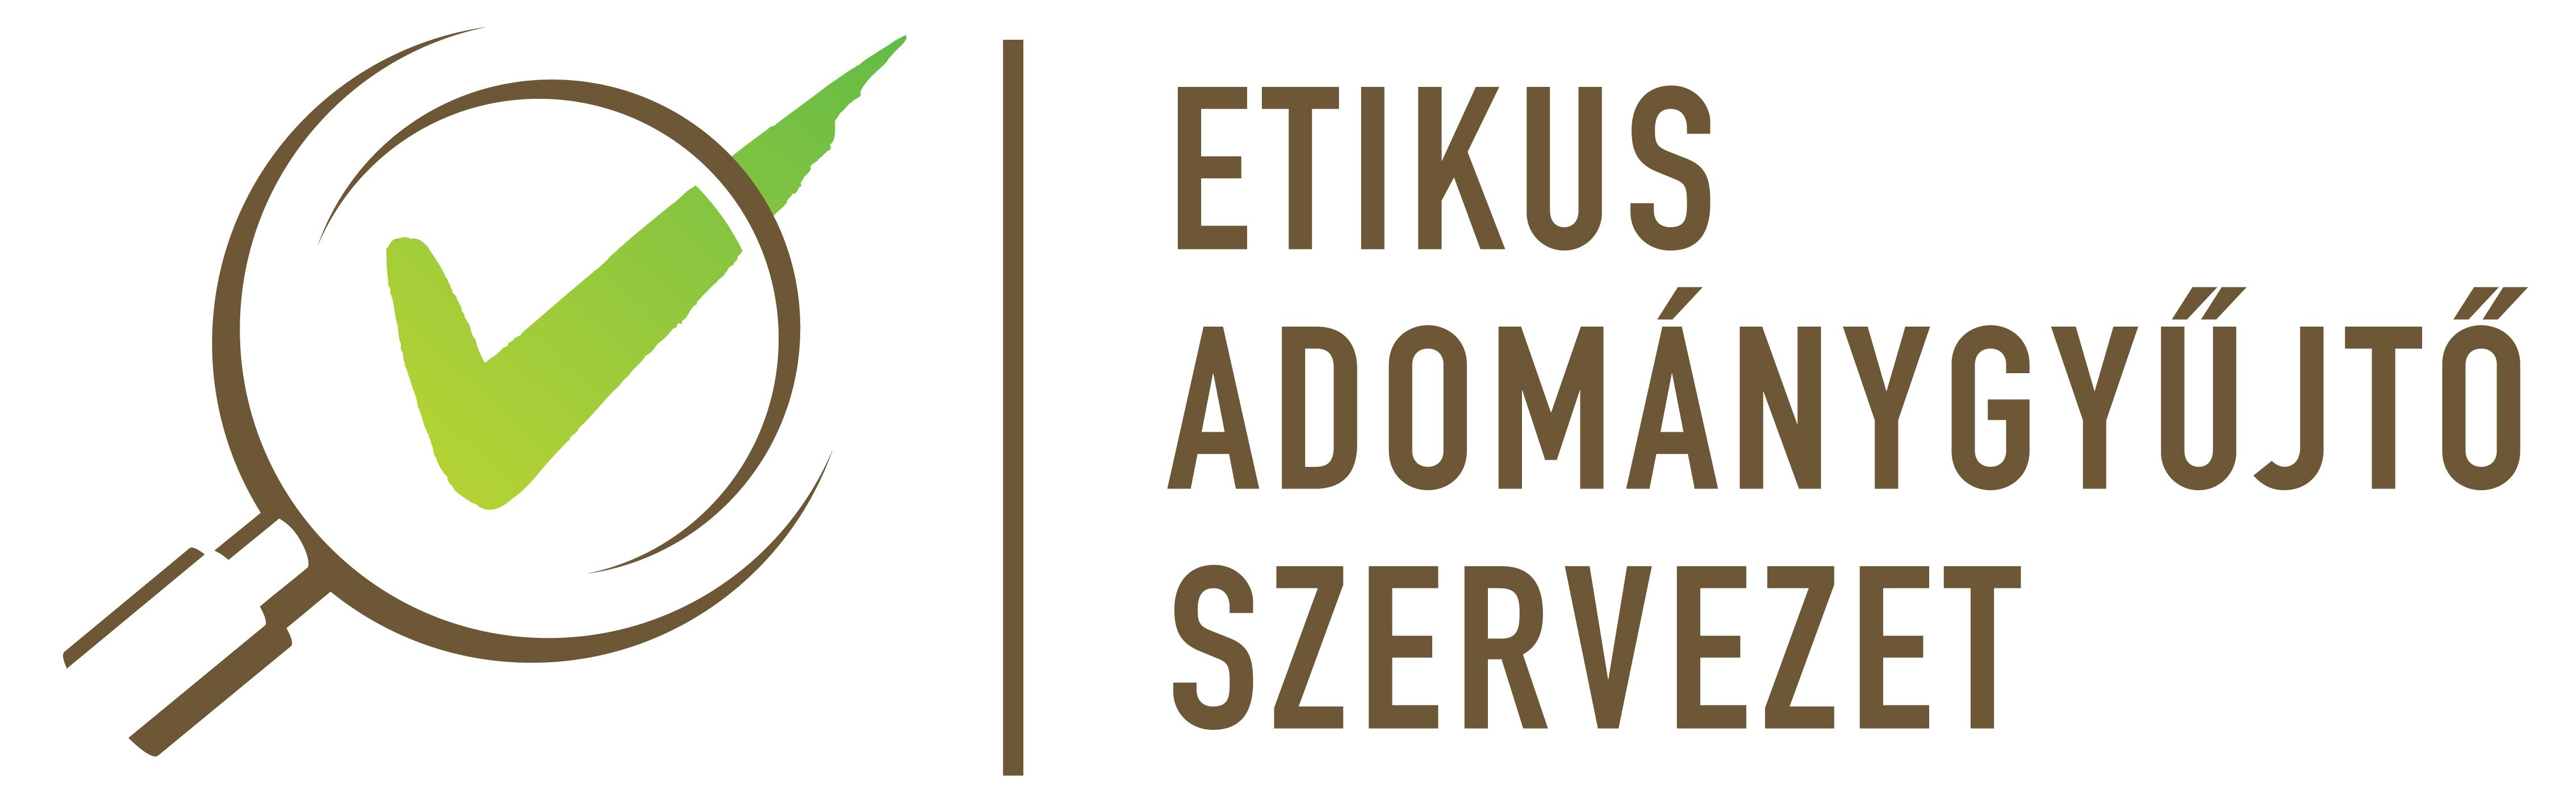 etikusadomanygyujto_logo